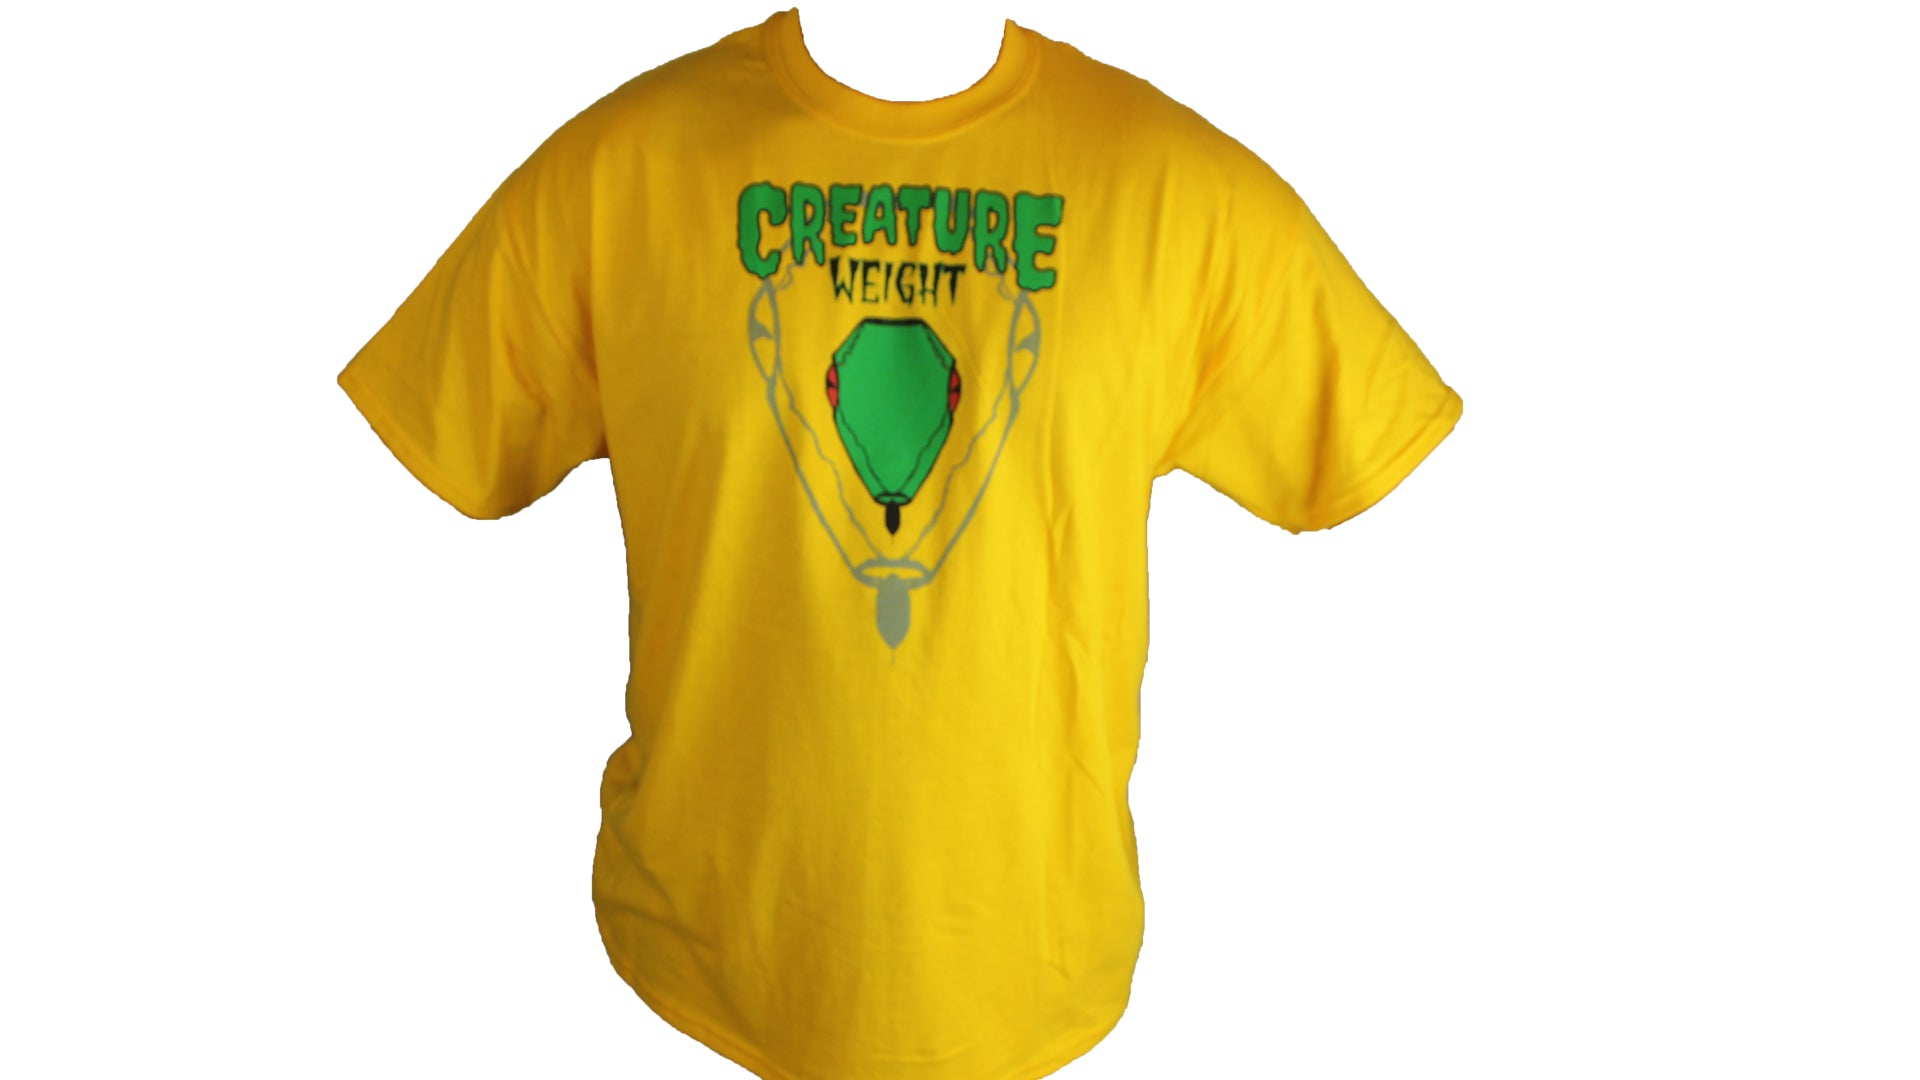 Creature Weight Short Sleeve T-Shirt